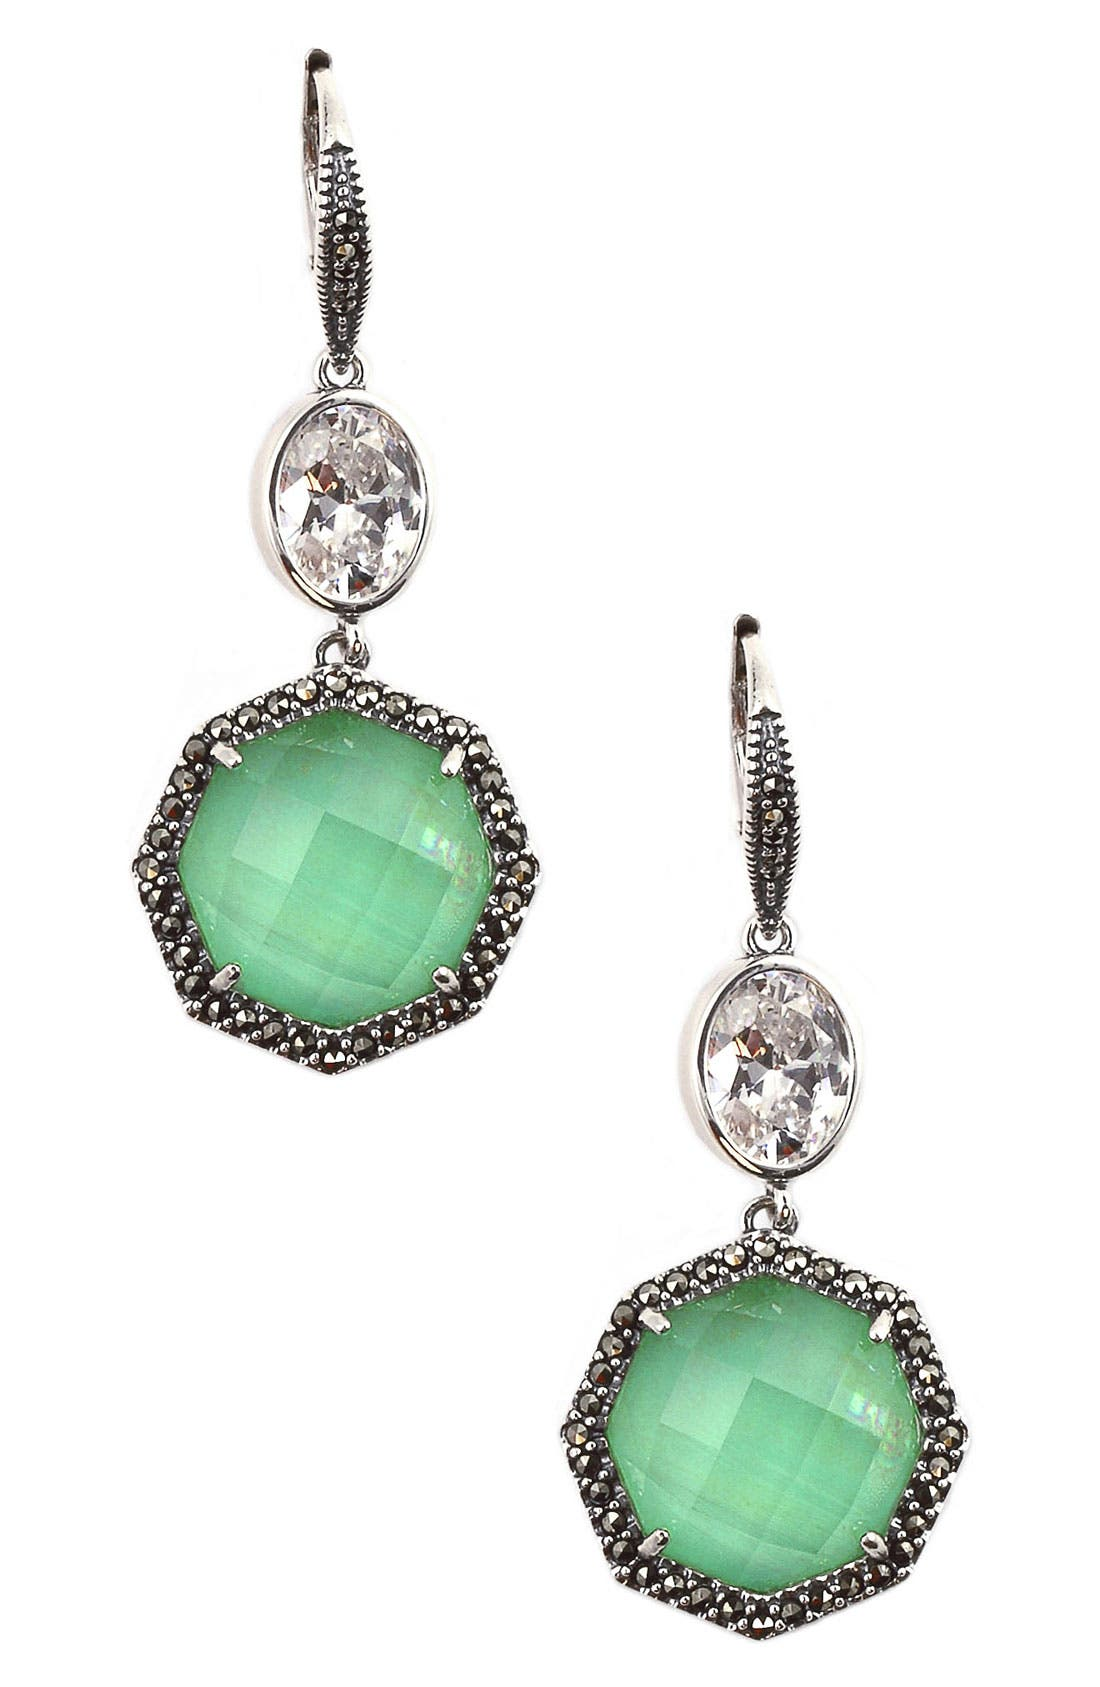 Alternate Image 1 Selected - Judith Jack 'Maldives' Medium Drop Earrings